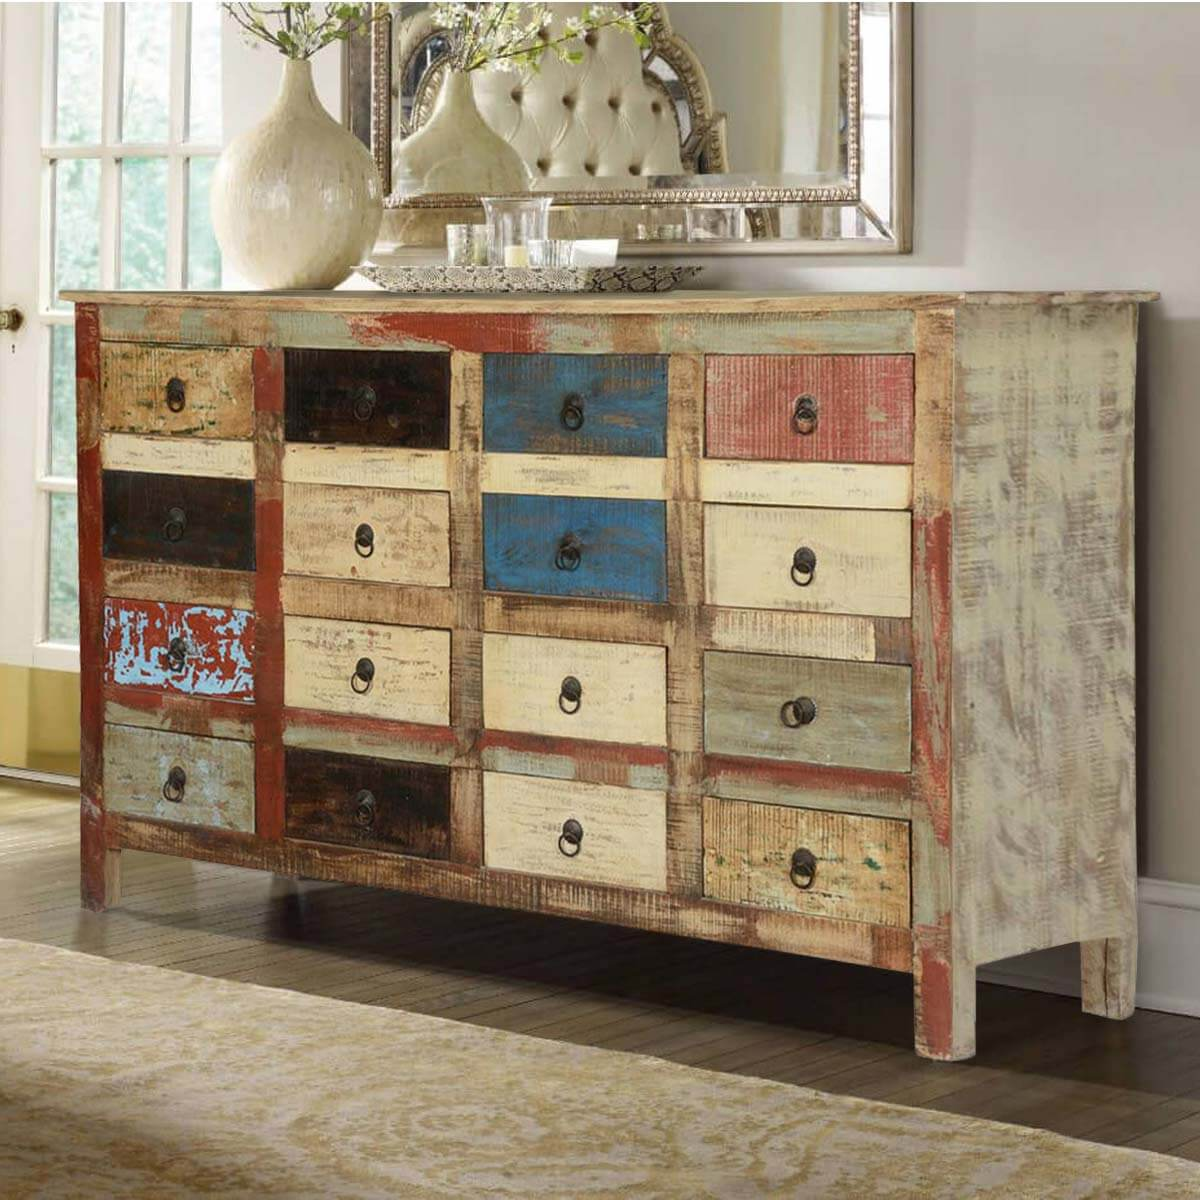 gustavian horizontal painted home kathy dressers swedish style productlist dresser chest eclectic kuo patric designer product